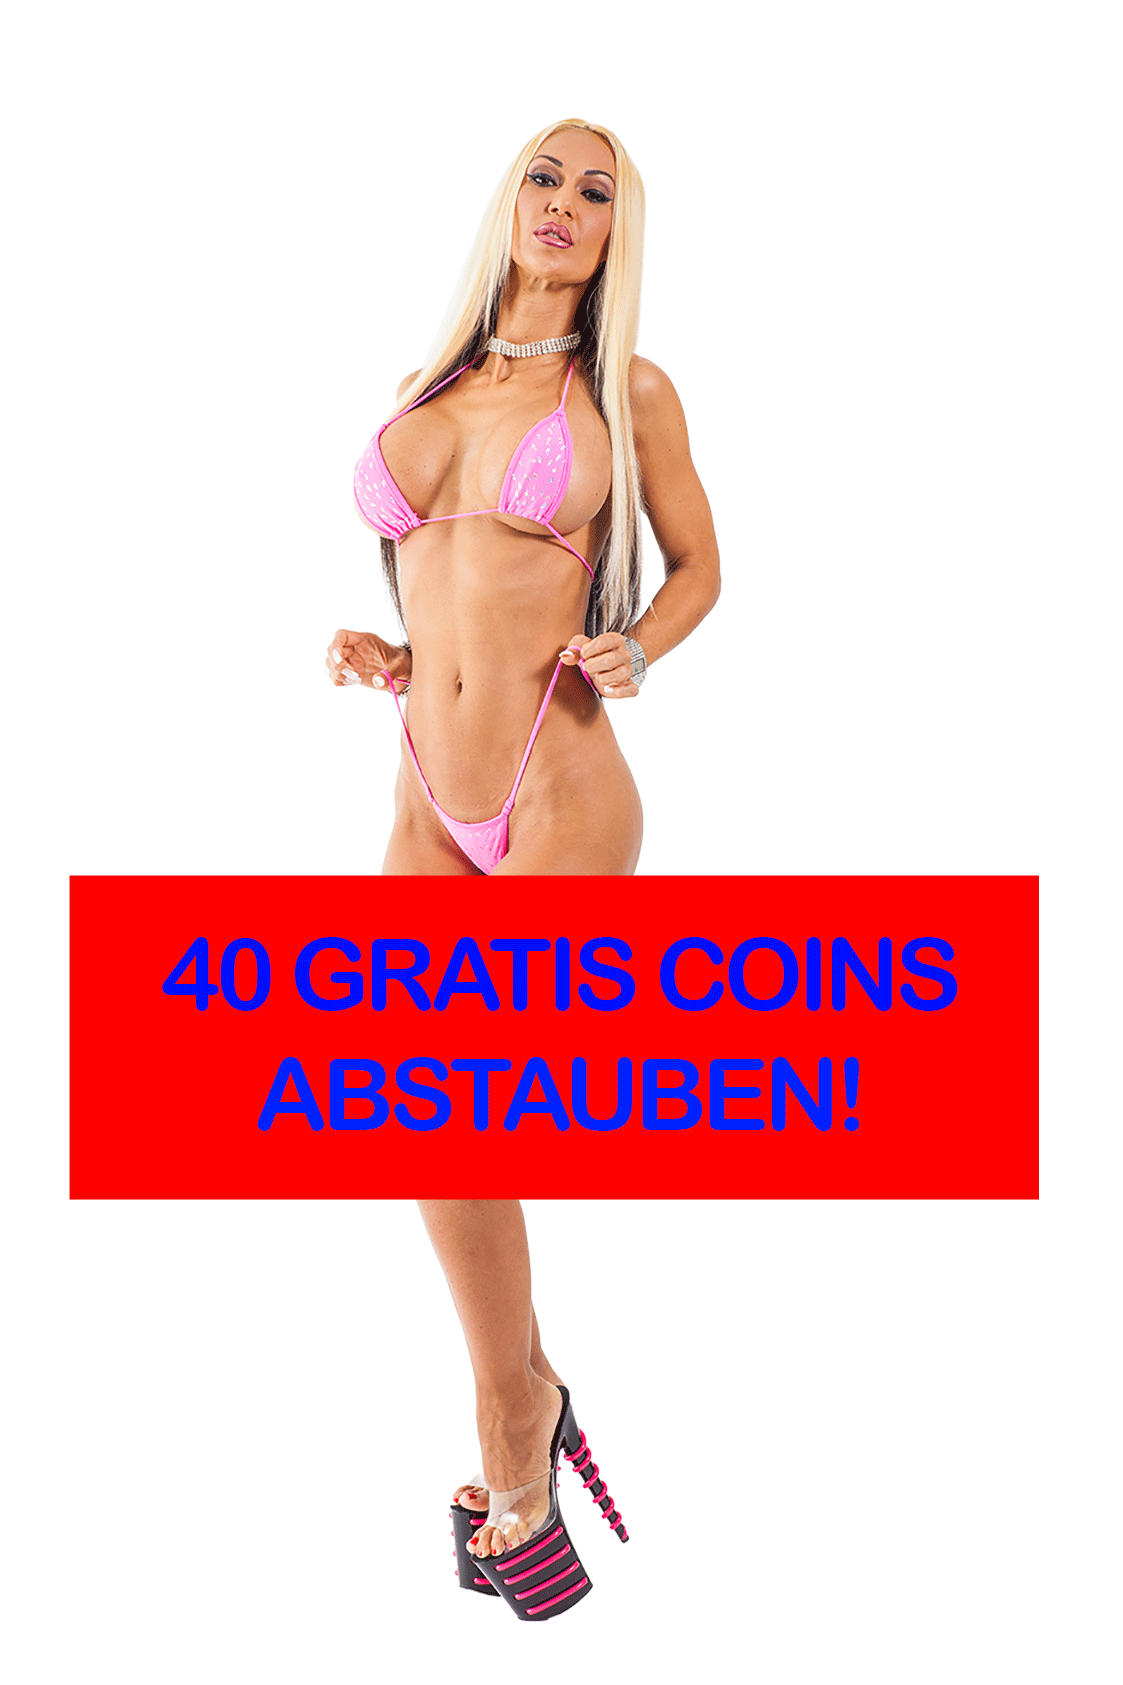 40 Gratis Coins Aileen Taylor